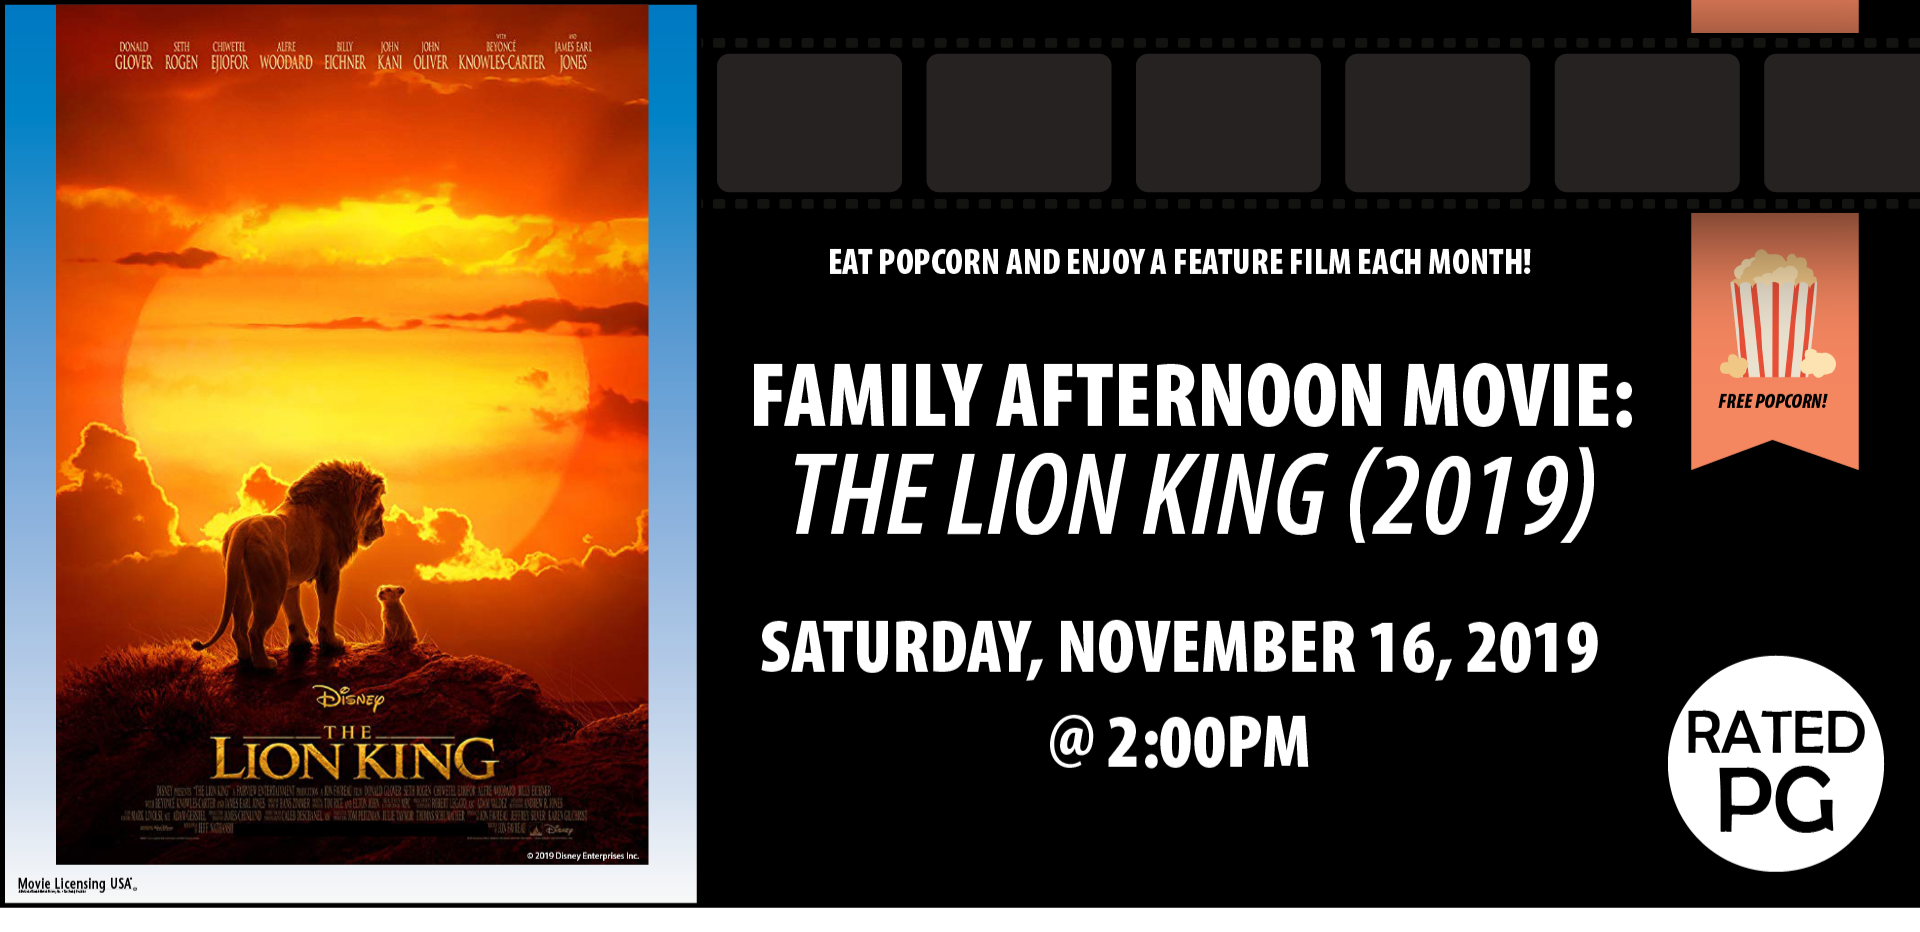 Family Afternoon Movie The Lion King 2019